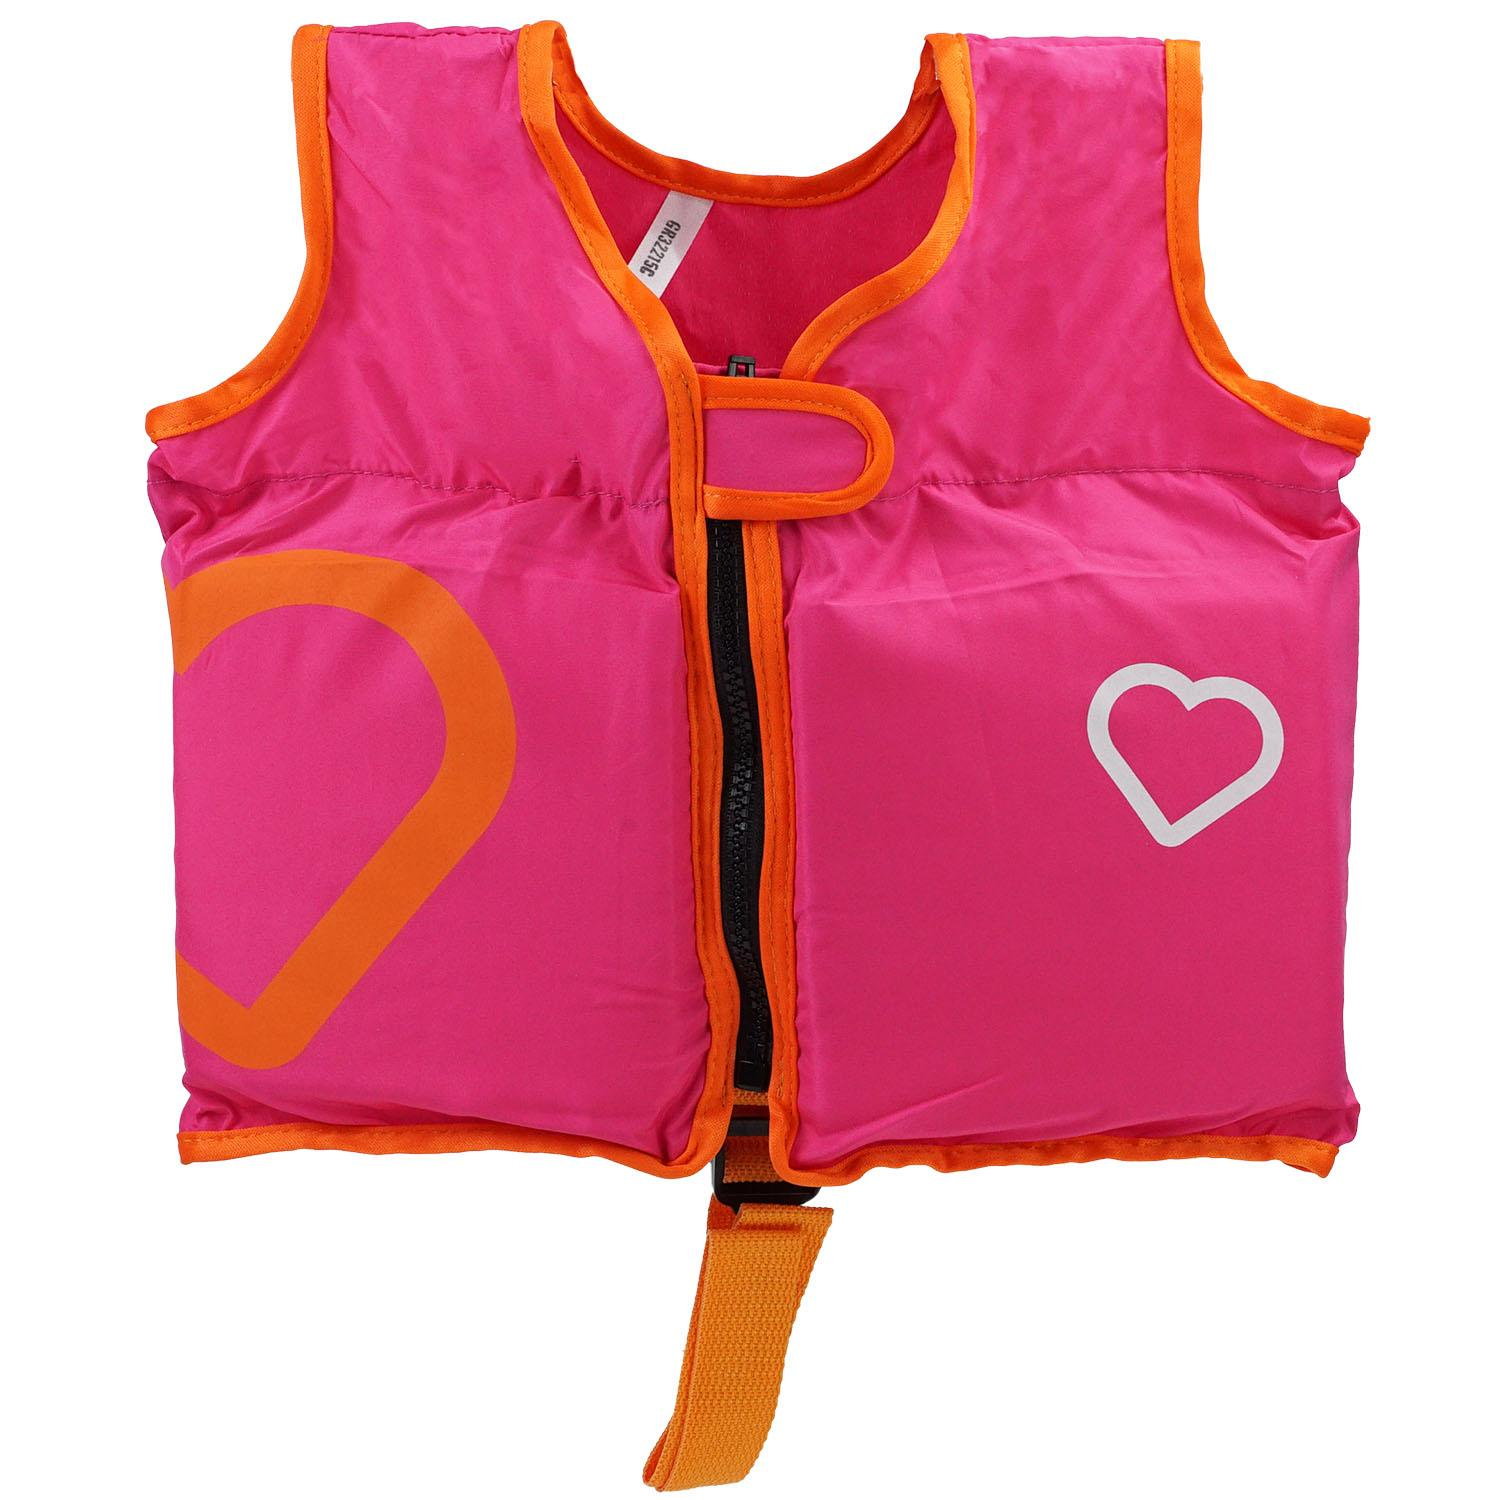 "12.5"" Adjustable Pink Swim Vest with Heart Design for Swimming Pools - Children Ages 2-4"